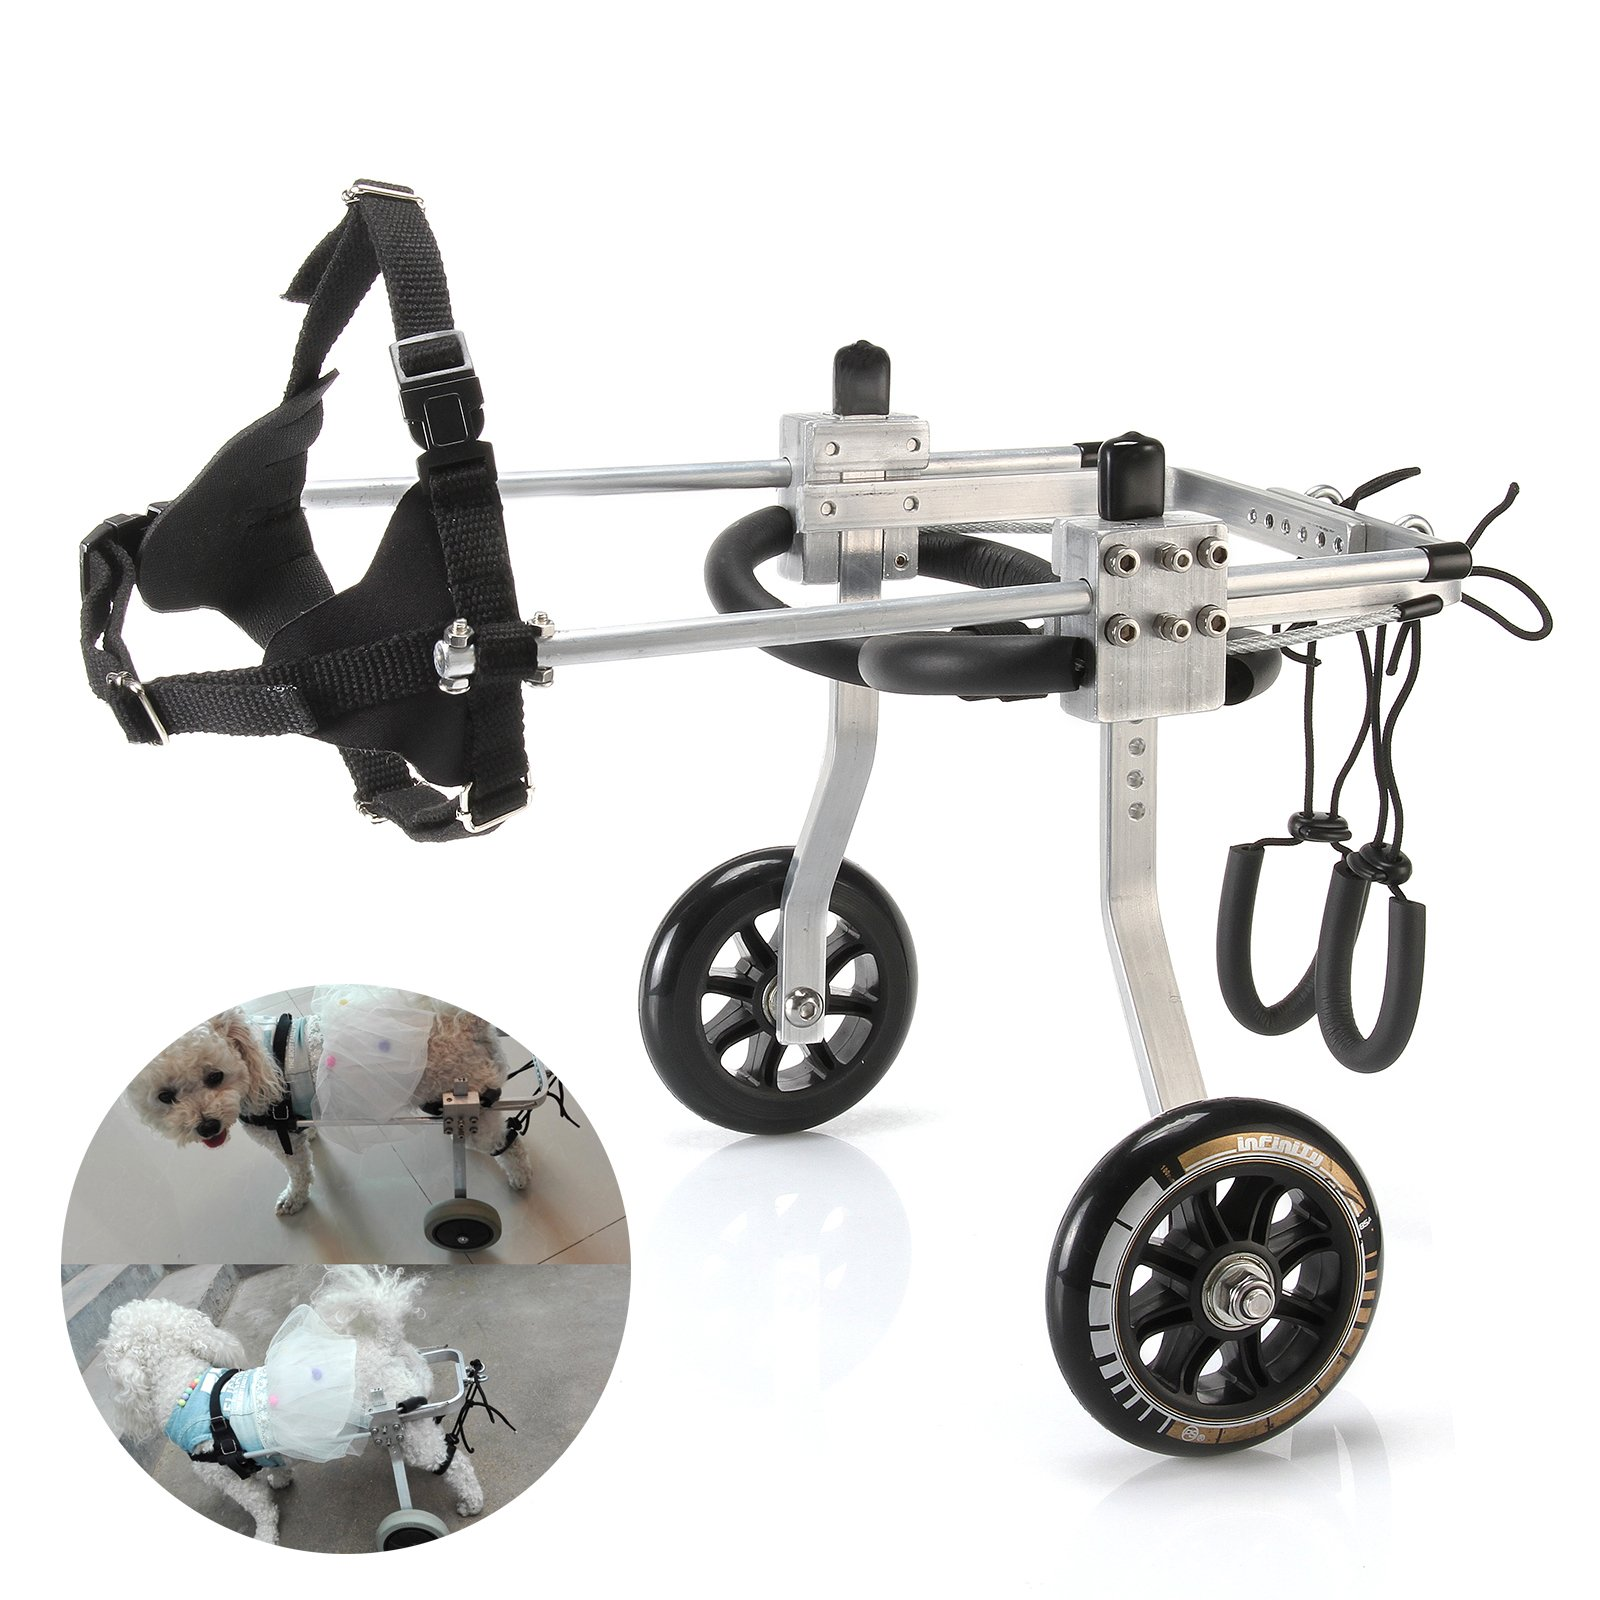 Anmas Sport Adjustable Dog Pet Wheelchair, Hind Legs Rehabilitation (S-Size: 1.Hip Height: 7''-9'', Weight: 0-5lbs) by Anmas Sport